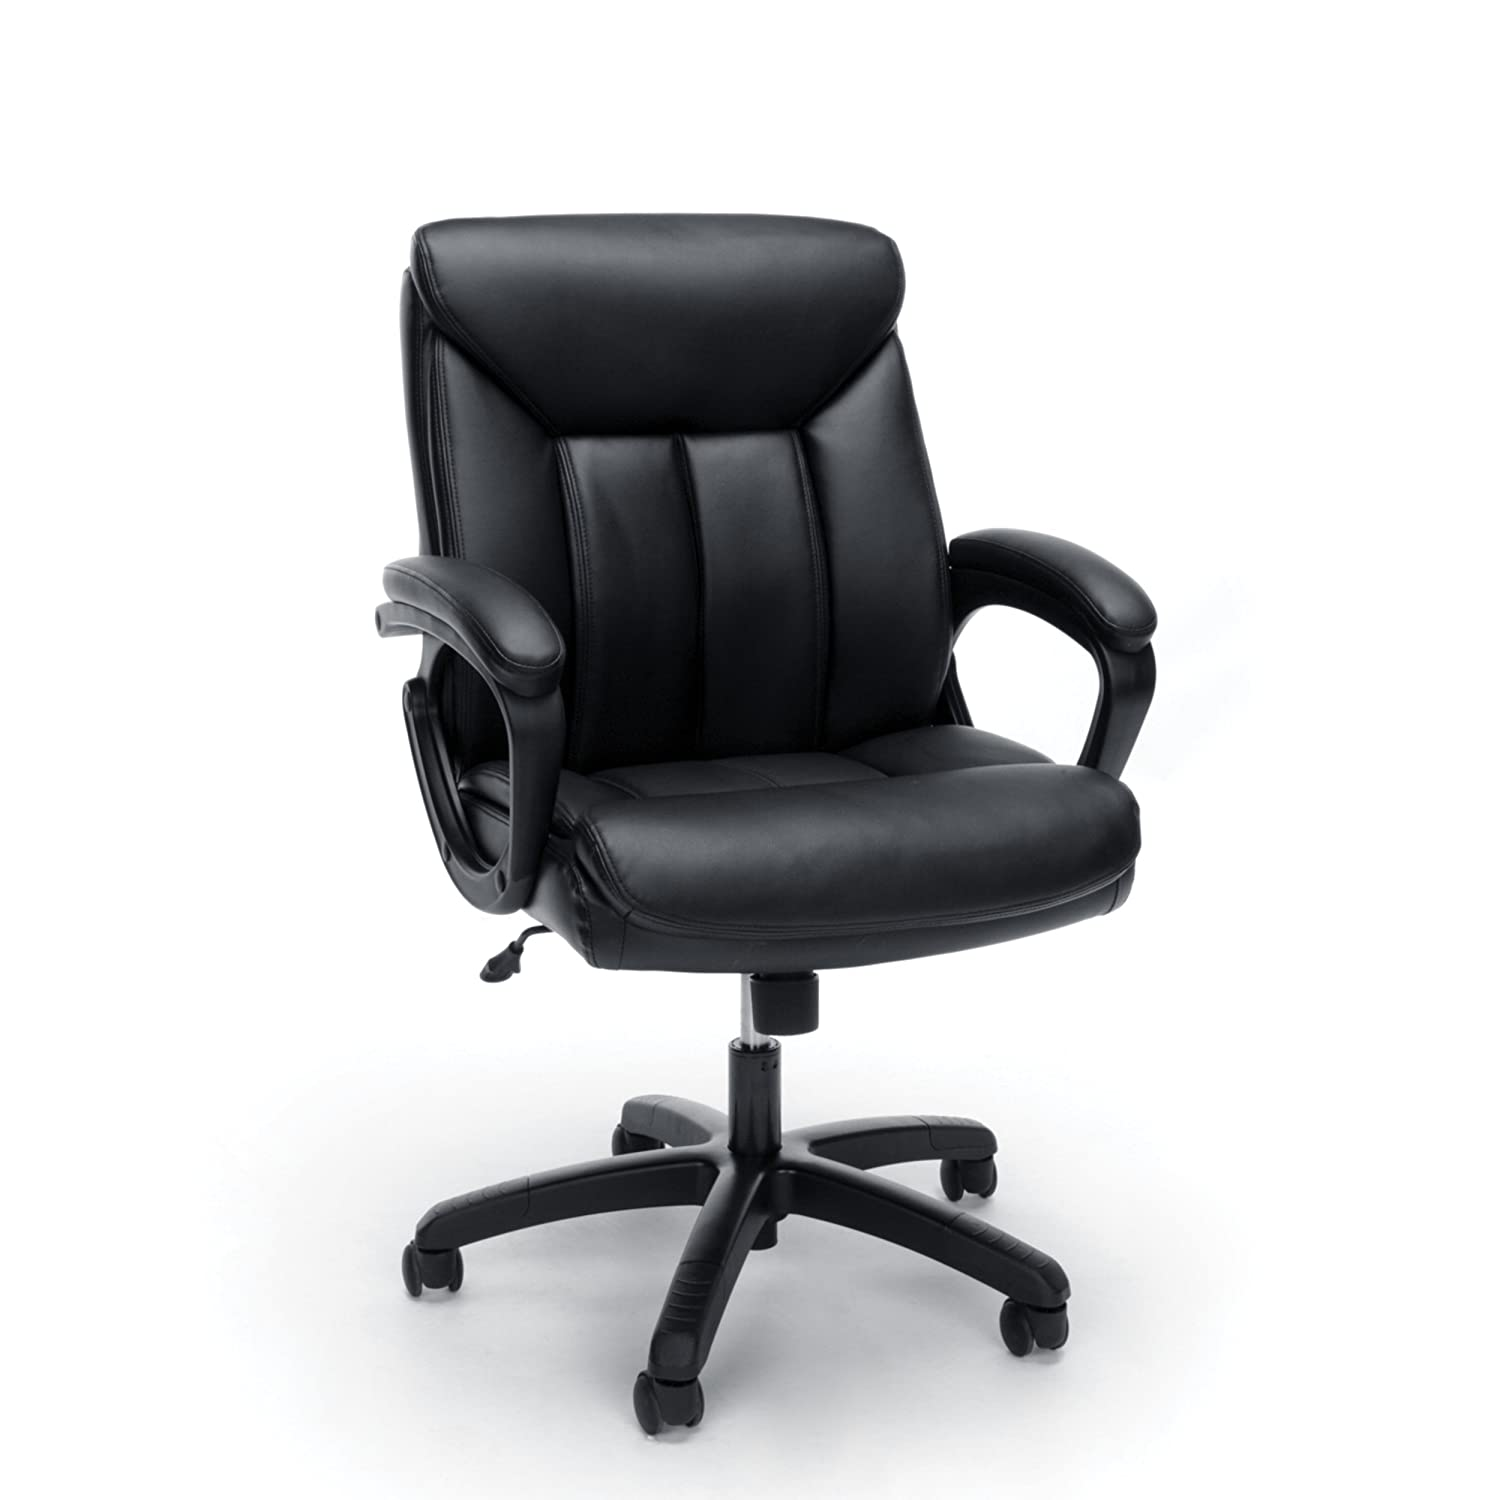 Essentials Leather Executive Computer/Office Chair With Arms